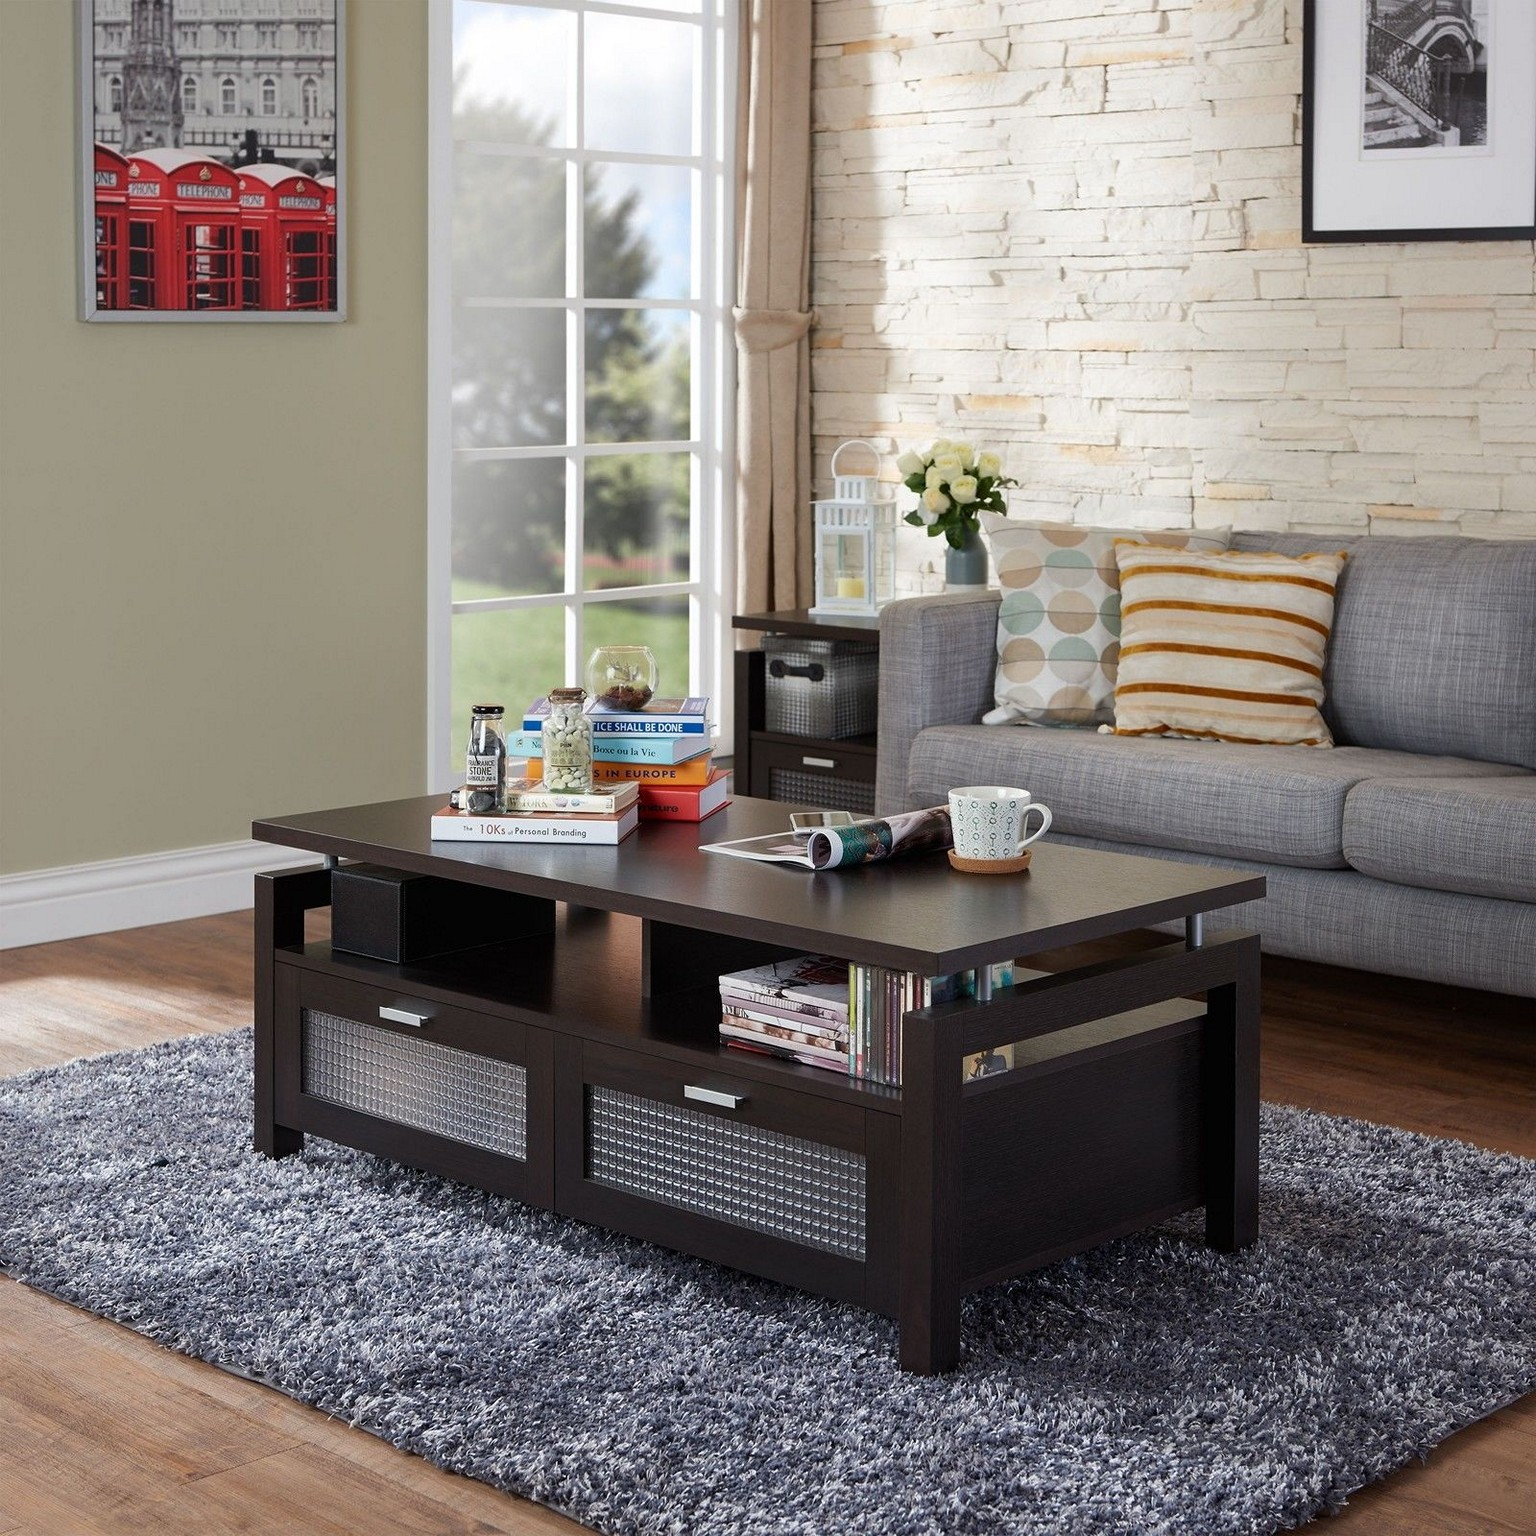 Modern Coffee Table Design Ideas Photo   6